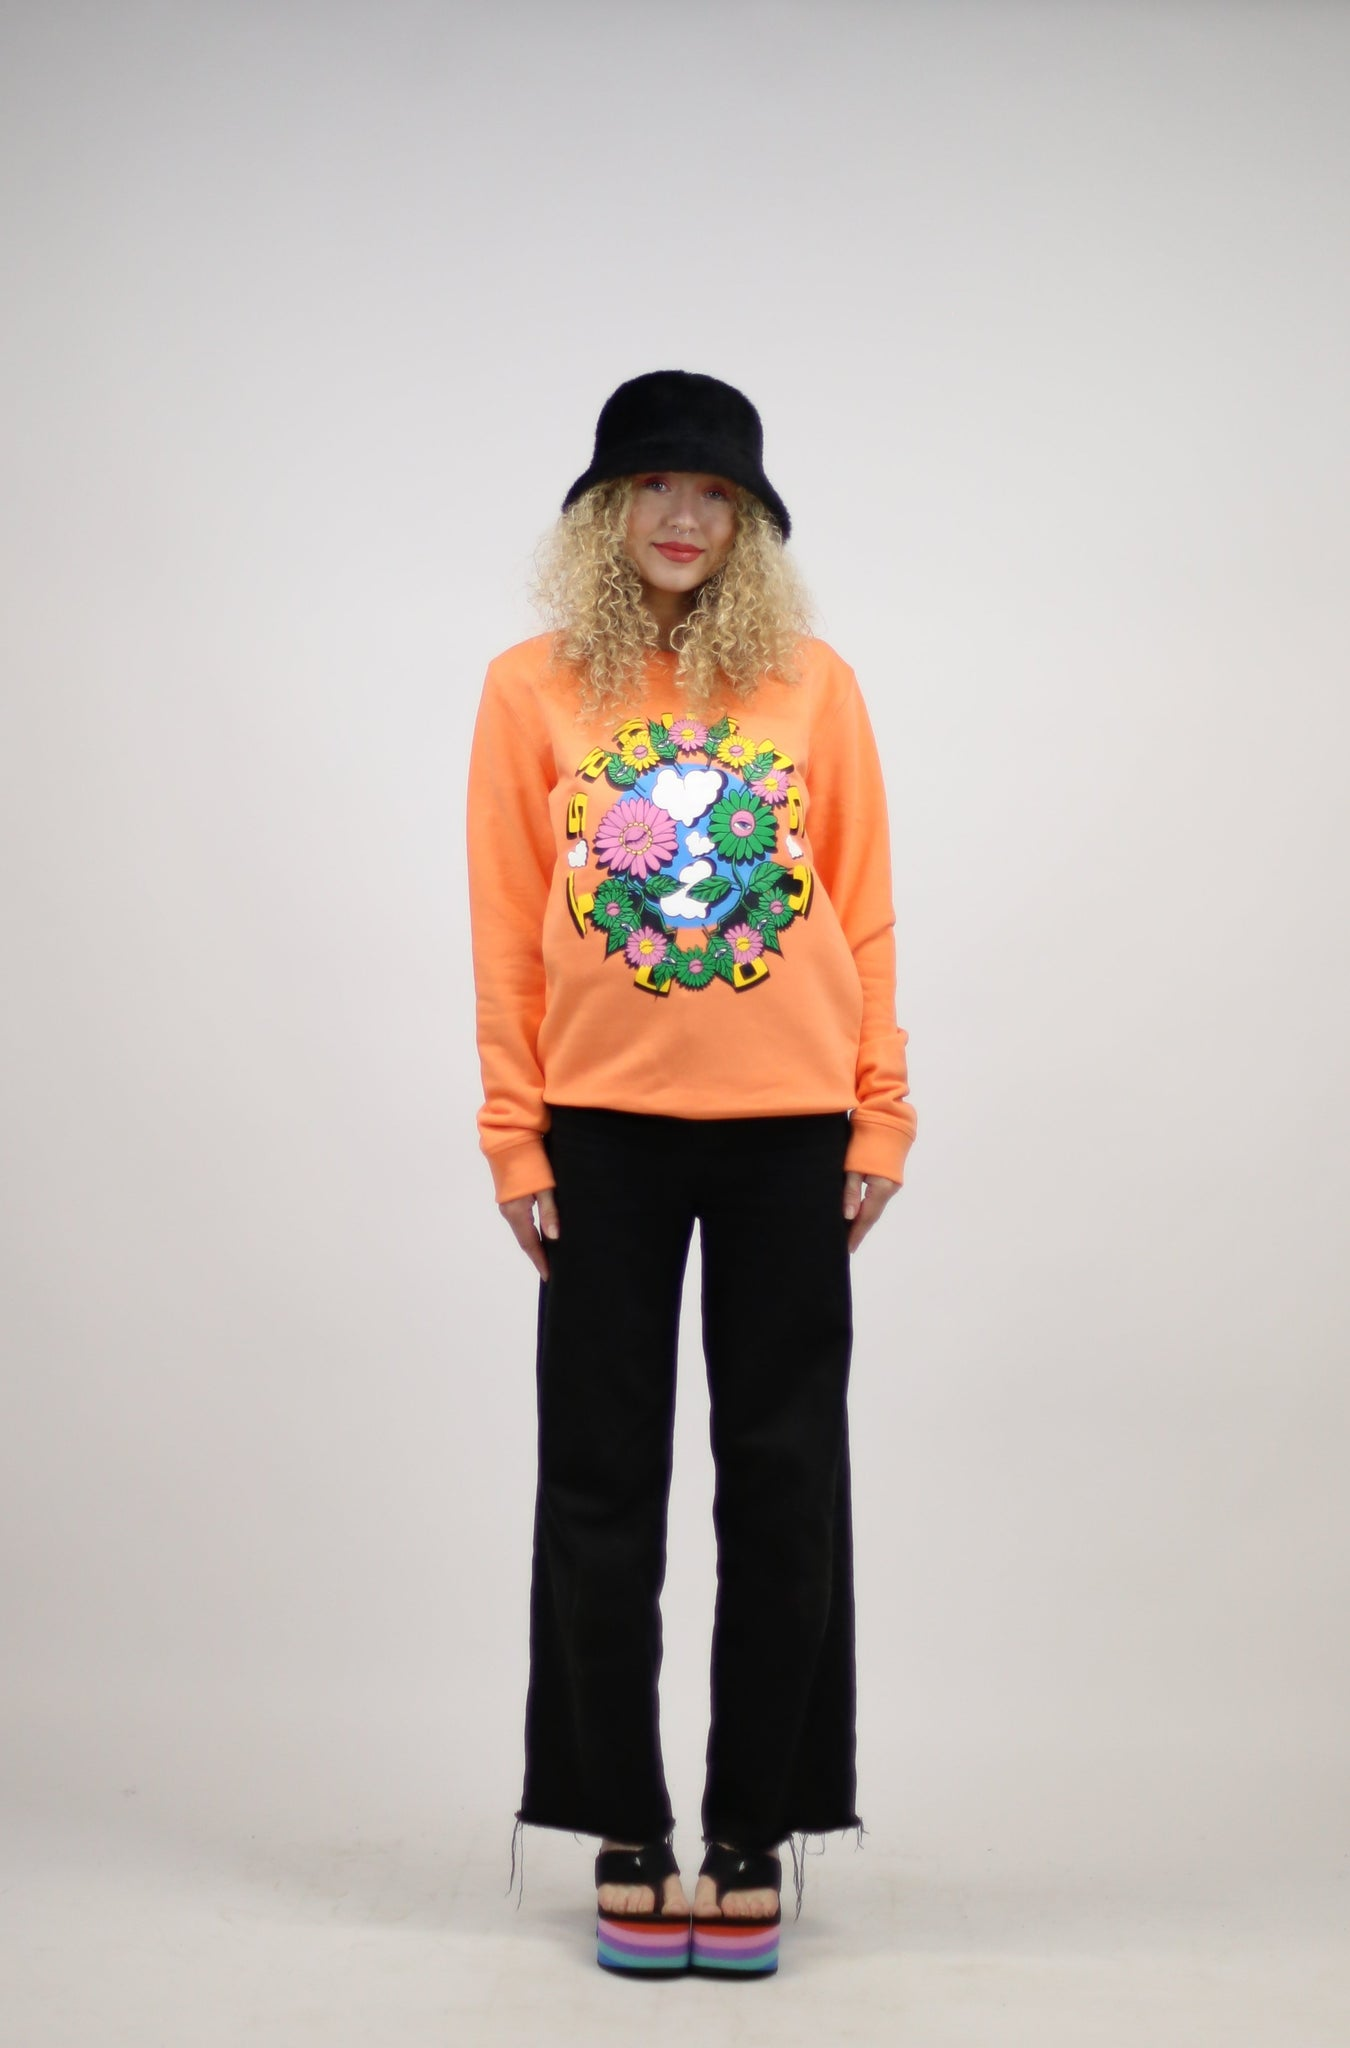 'Plant Friends' Peach Organic Cotton + Recycled Polyester sweatshirt